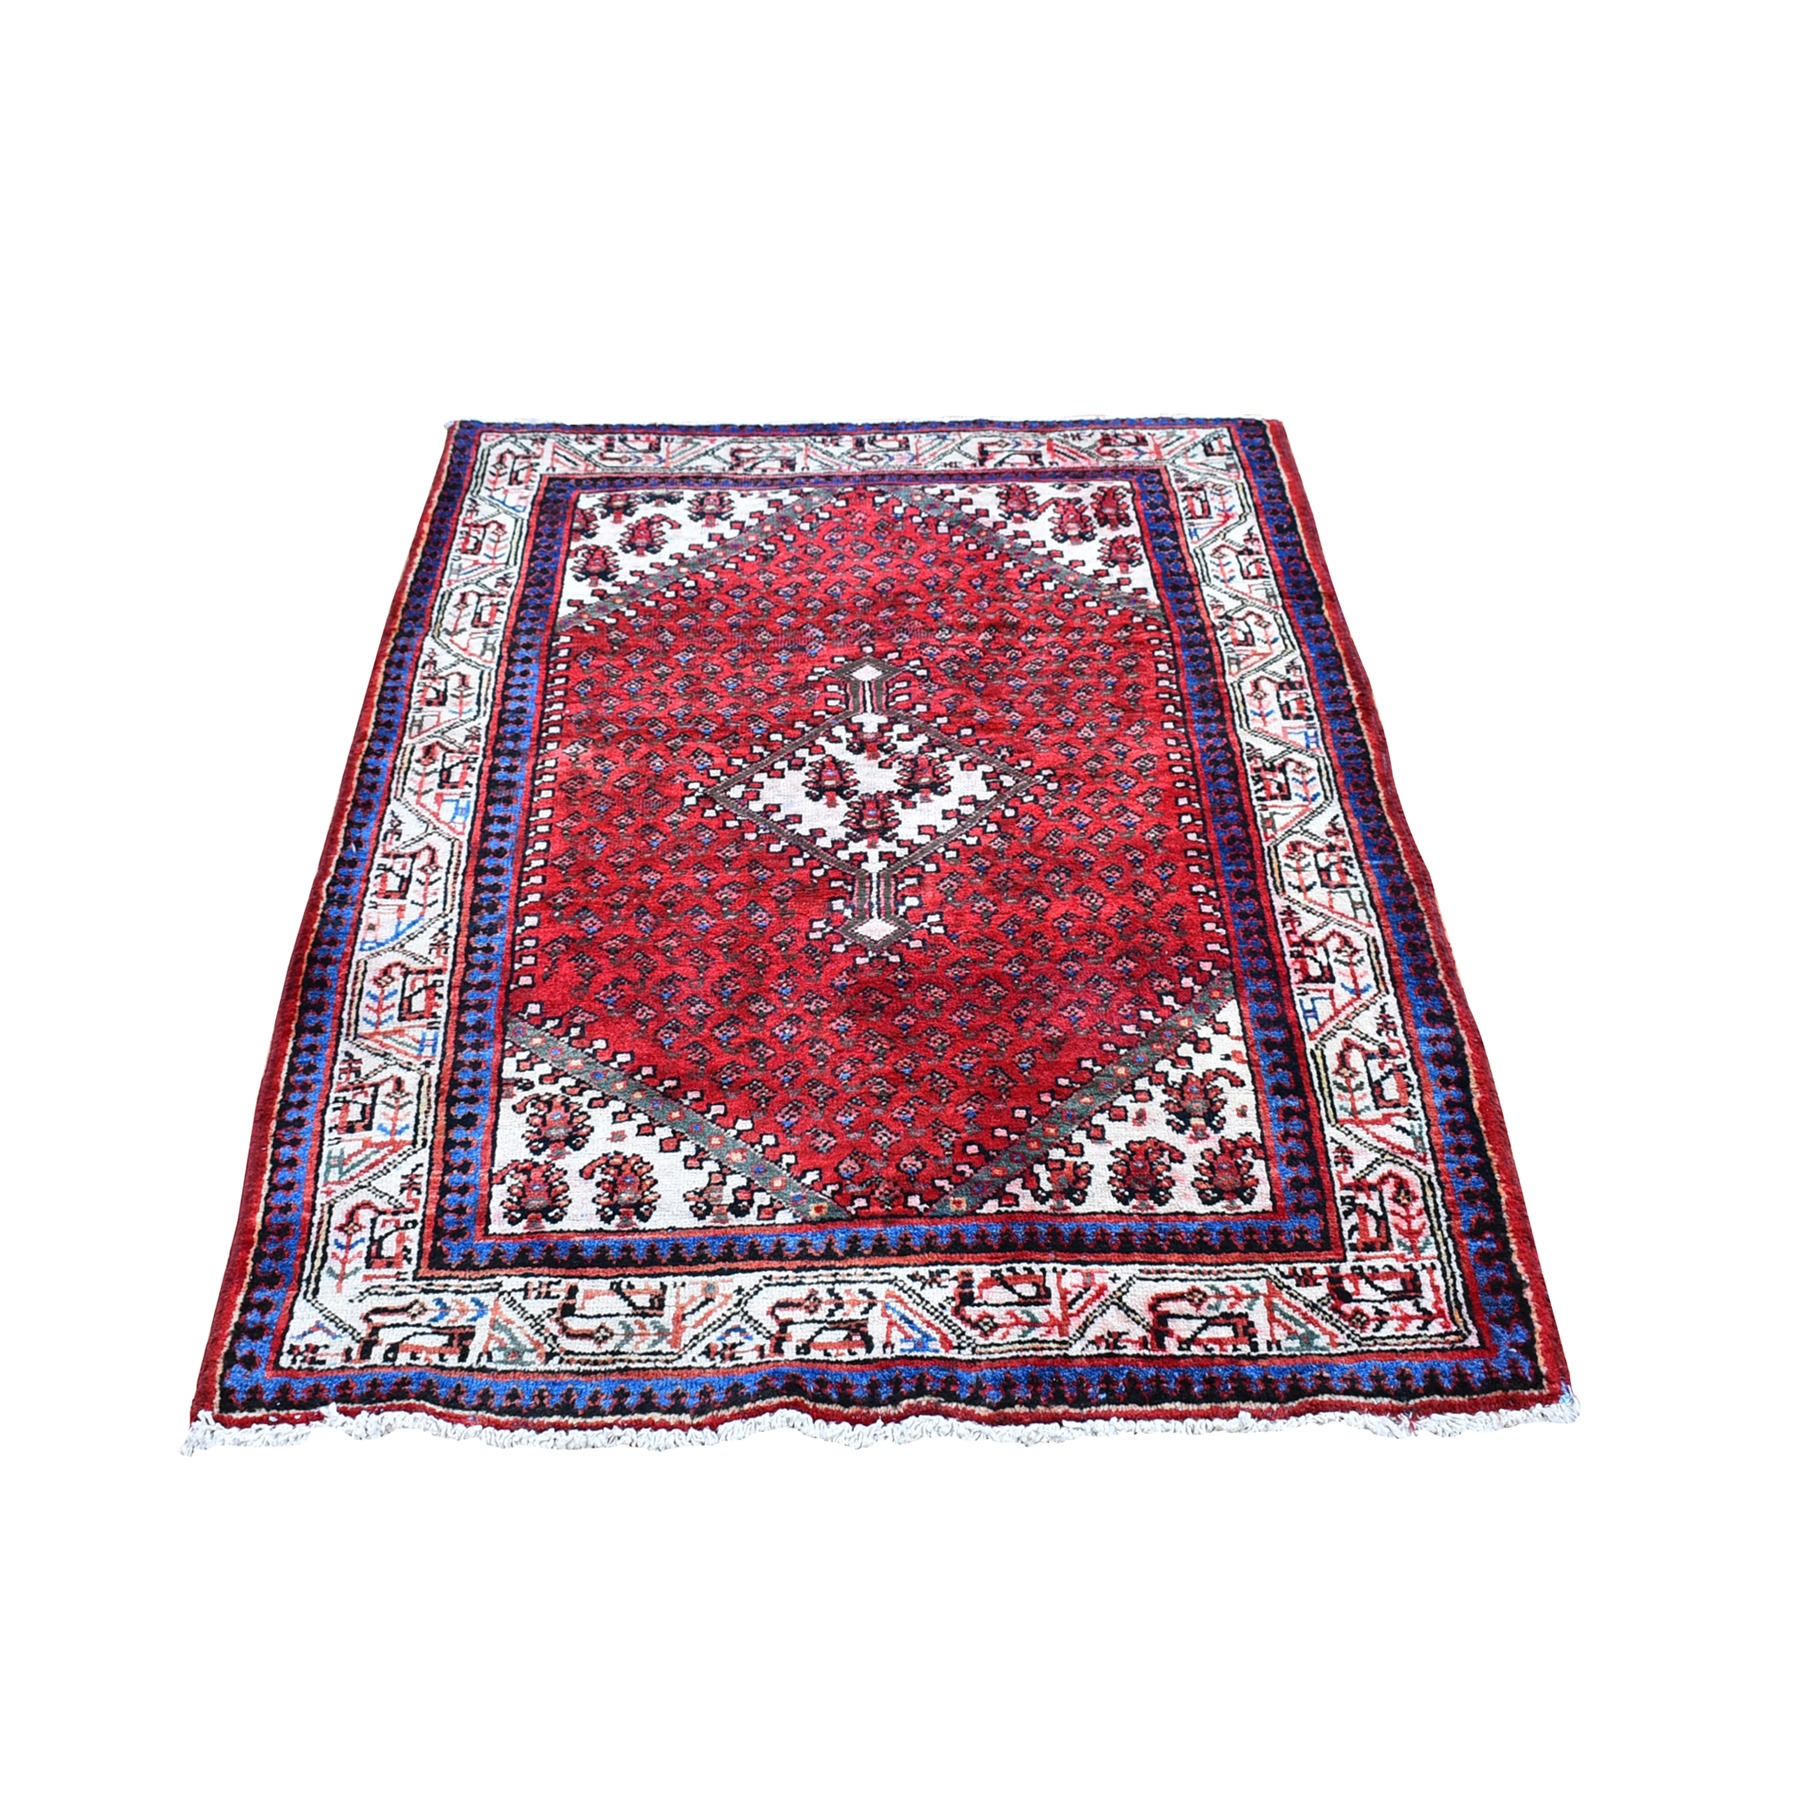 "3'7""x5' Red Vintage Persian Sarouk Mir Good Condition Repetitive  Design with Geometric Pure Wool Hand Knotted Oriental Rug"